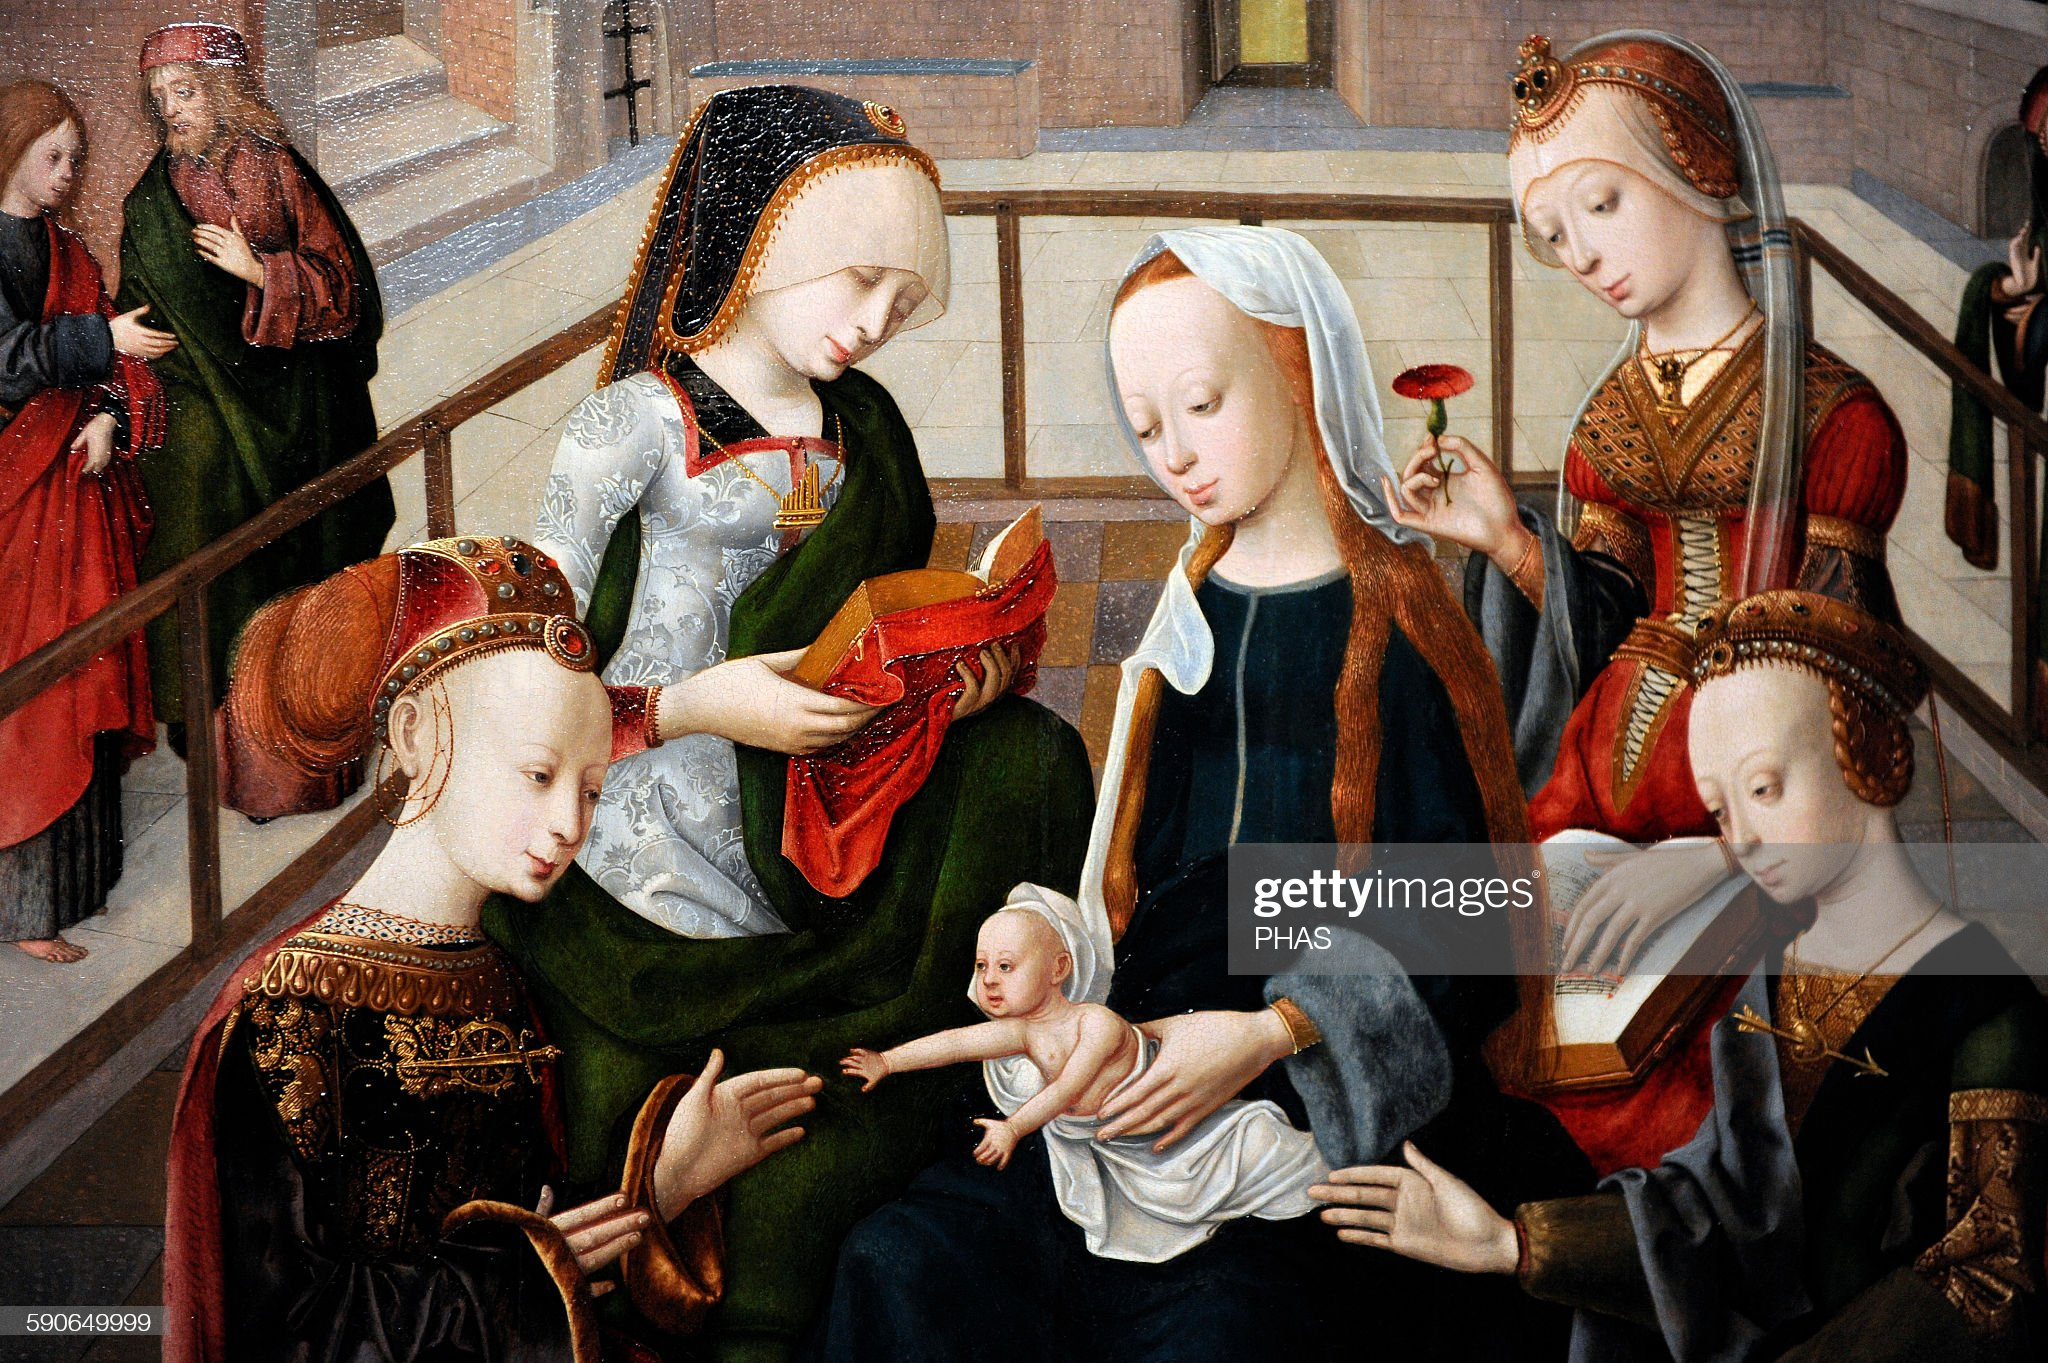 master-of-the-virgo-inter-virgines-the-virgin-and-child-with-four-c-picture-id590649999